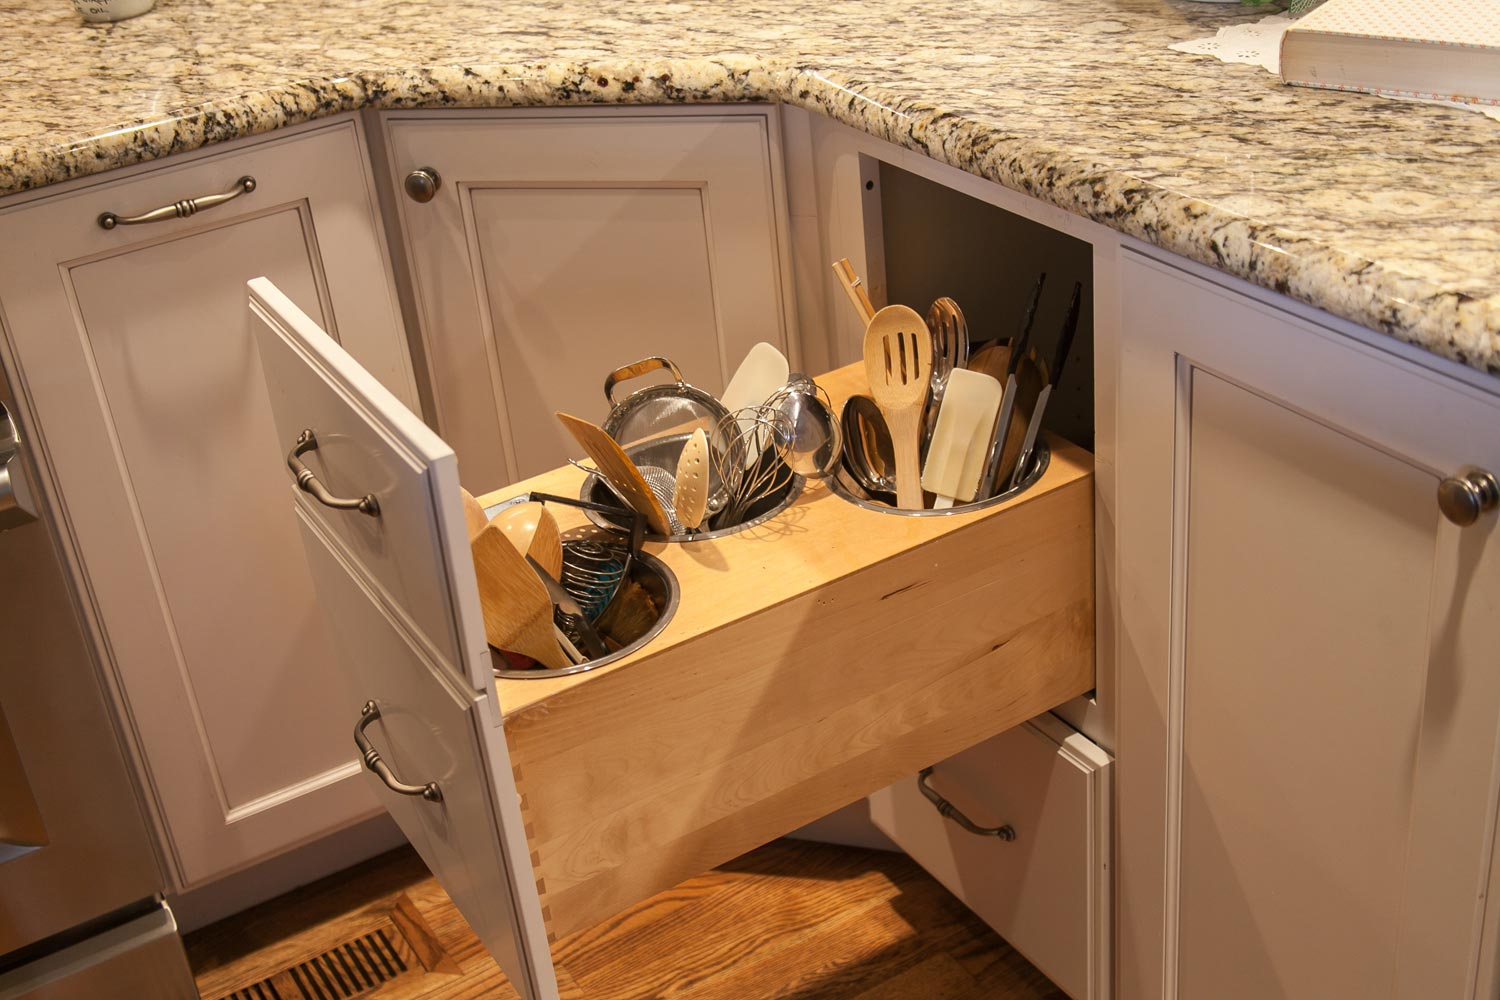 cool cubby for cooking utensils out of the way